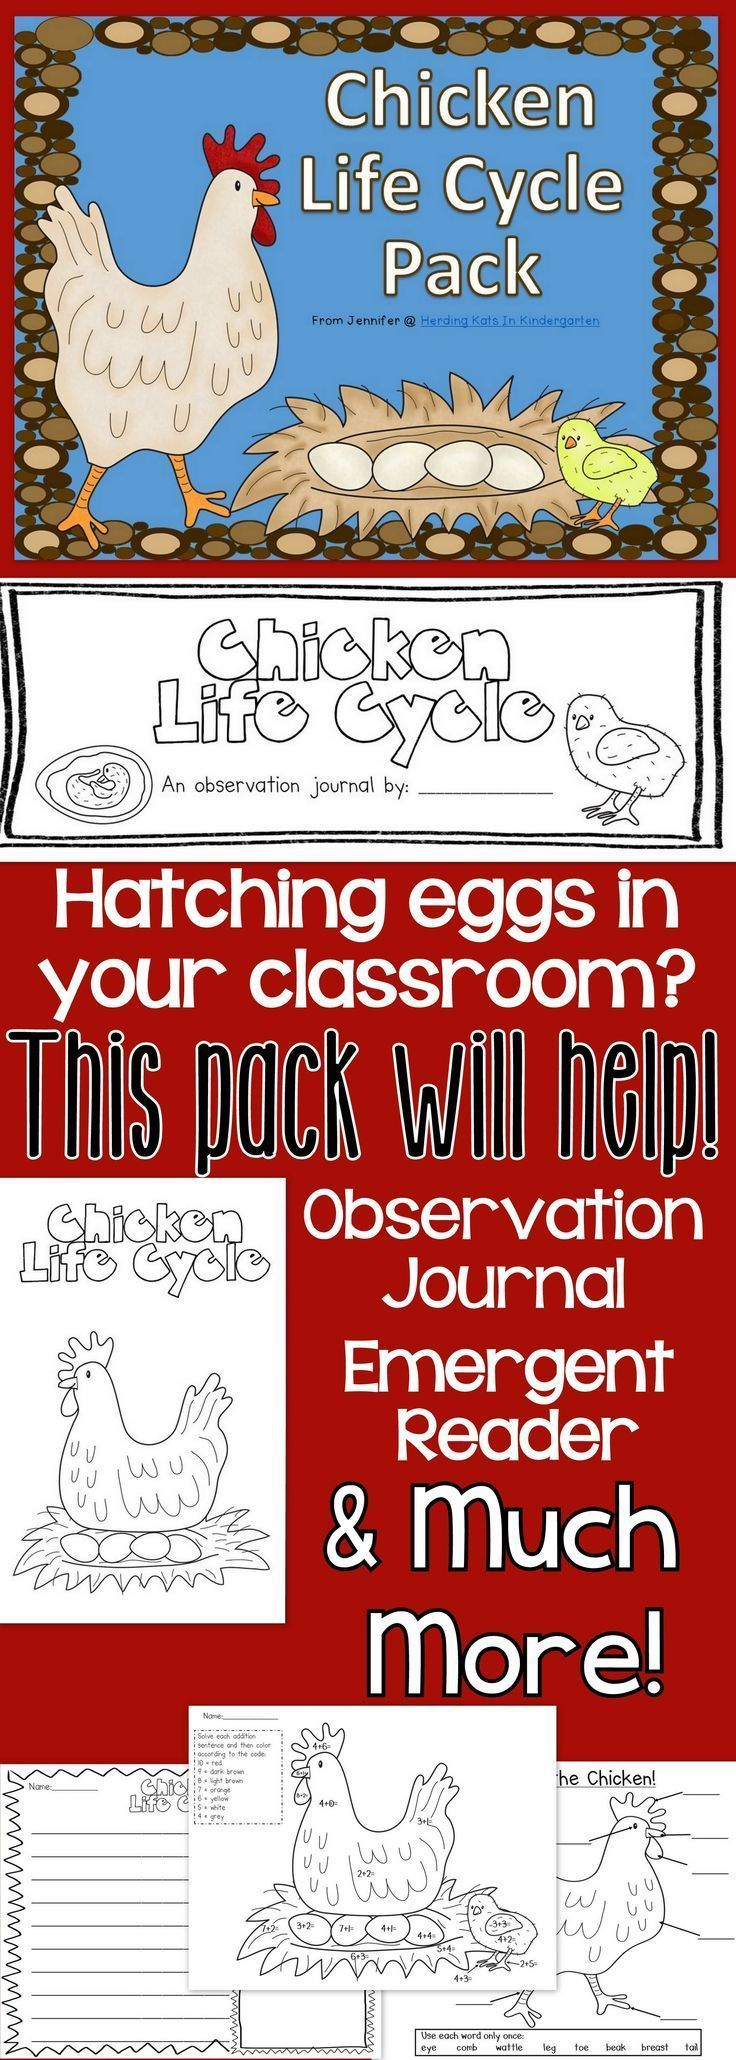 Raising chicks in class? This pack will be a big help for a Chicken Life Cycle unit! Contains a student observation journal, emergent reader, KWL chart, labeling & sequencing pages  & much more!